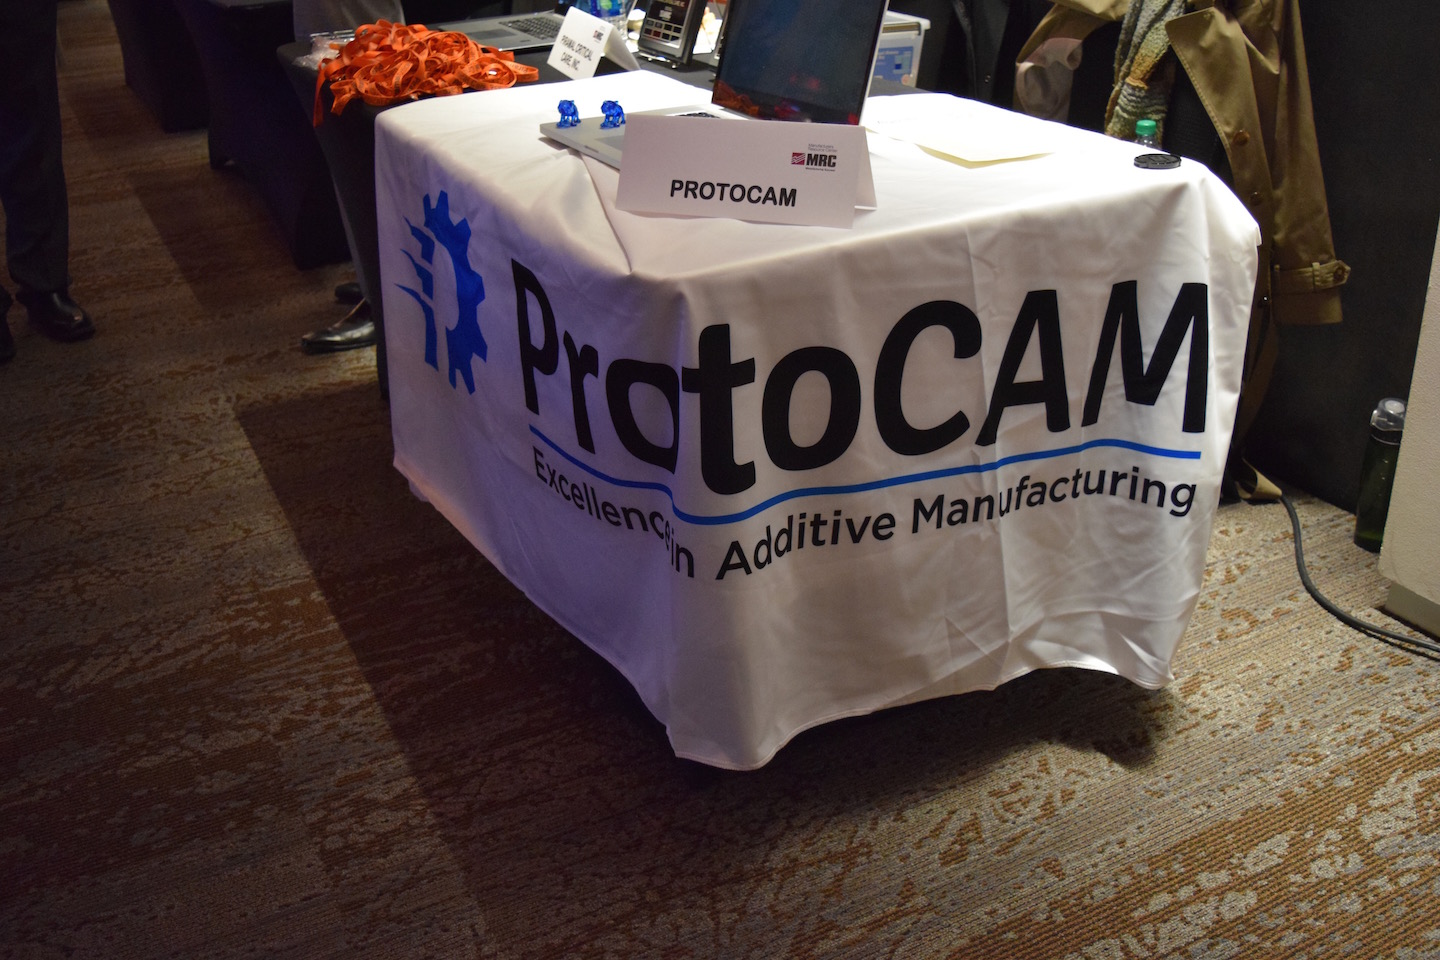 ProtoCAM's table